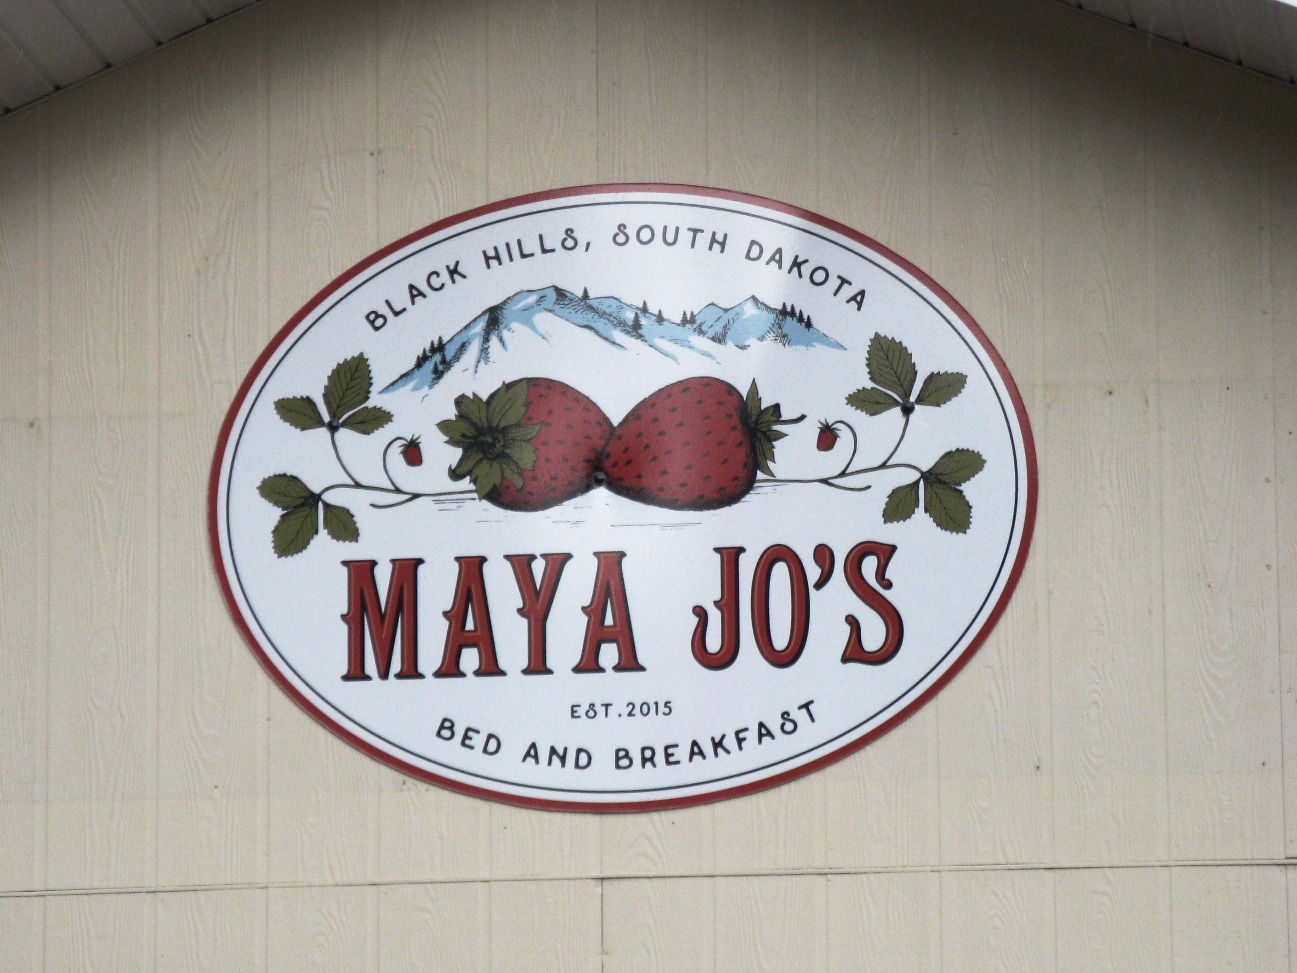 Maya Jos Bed & Breakfast